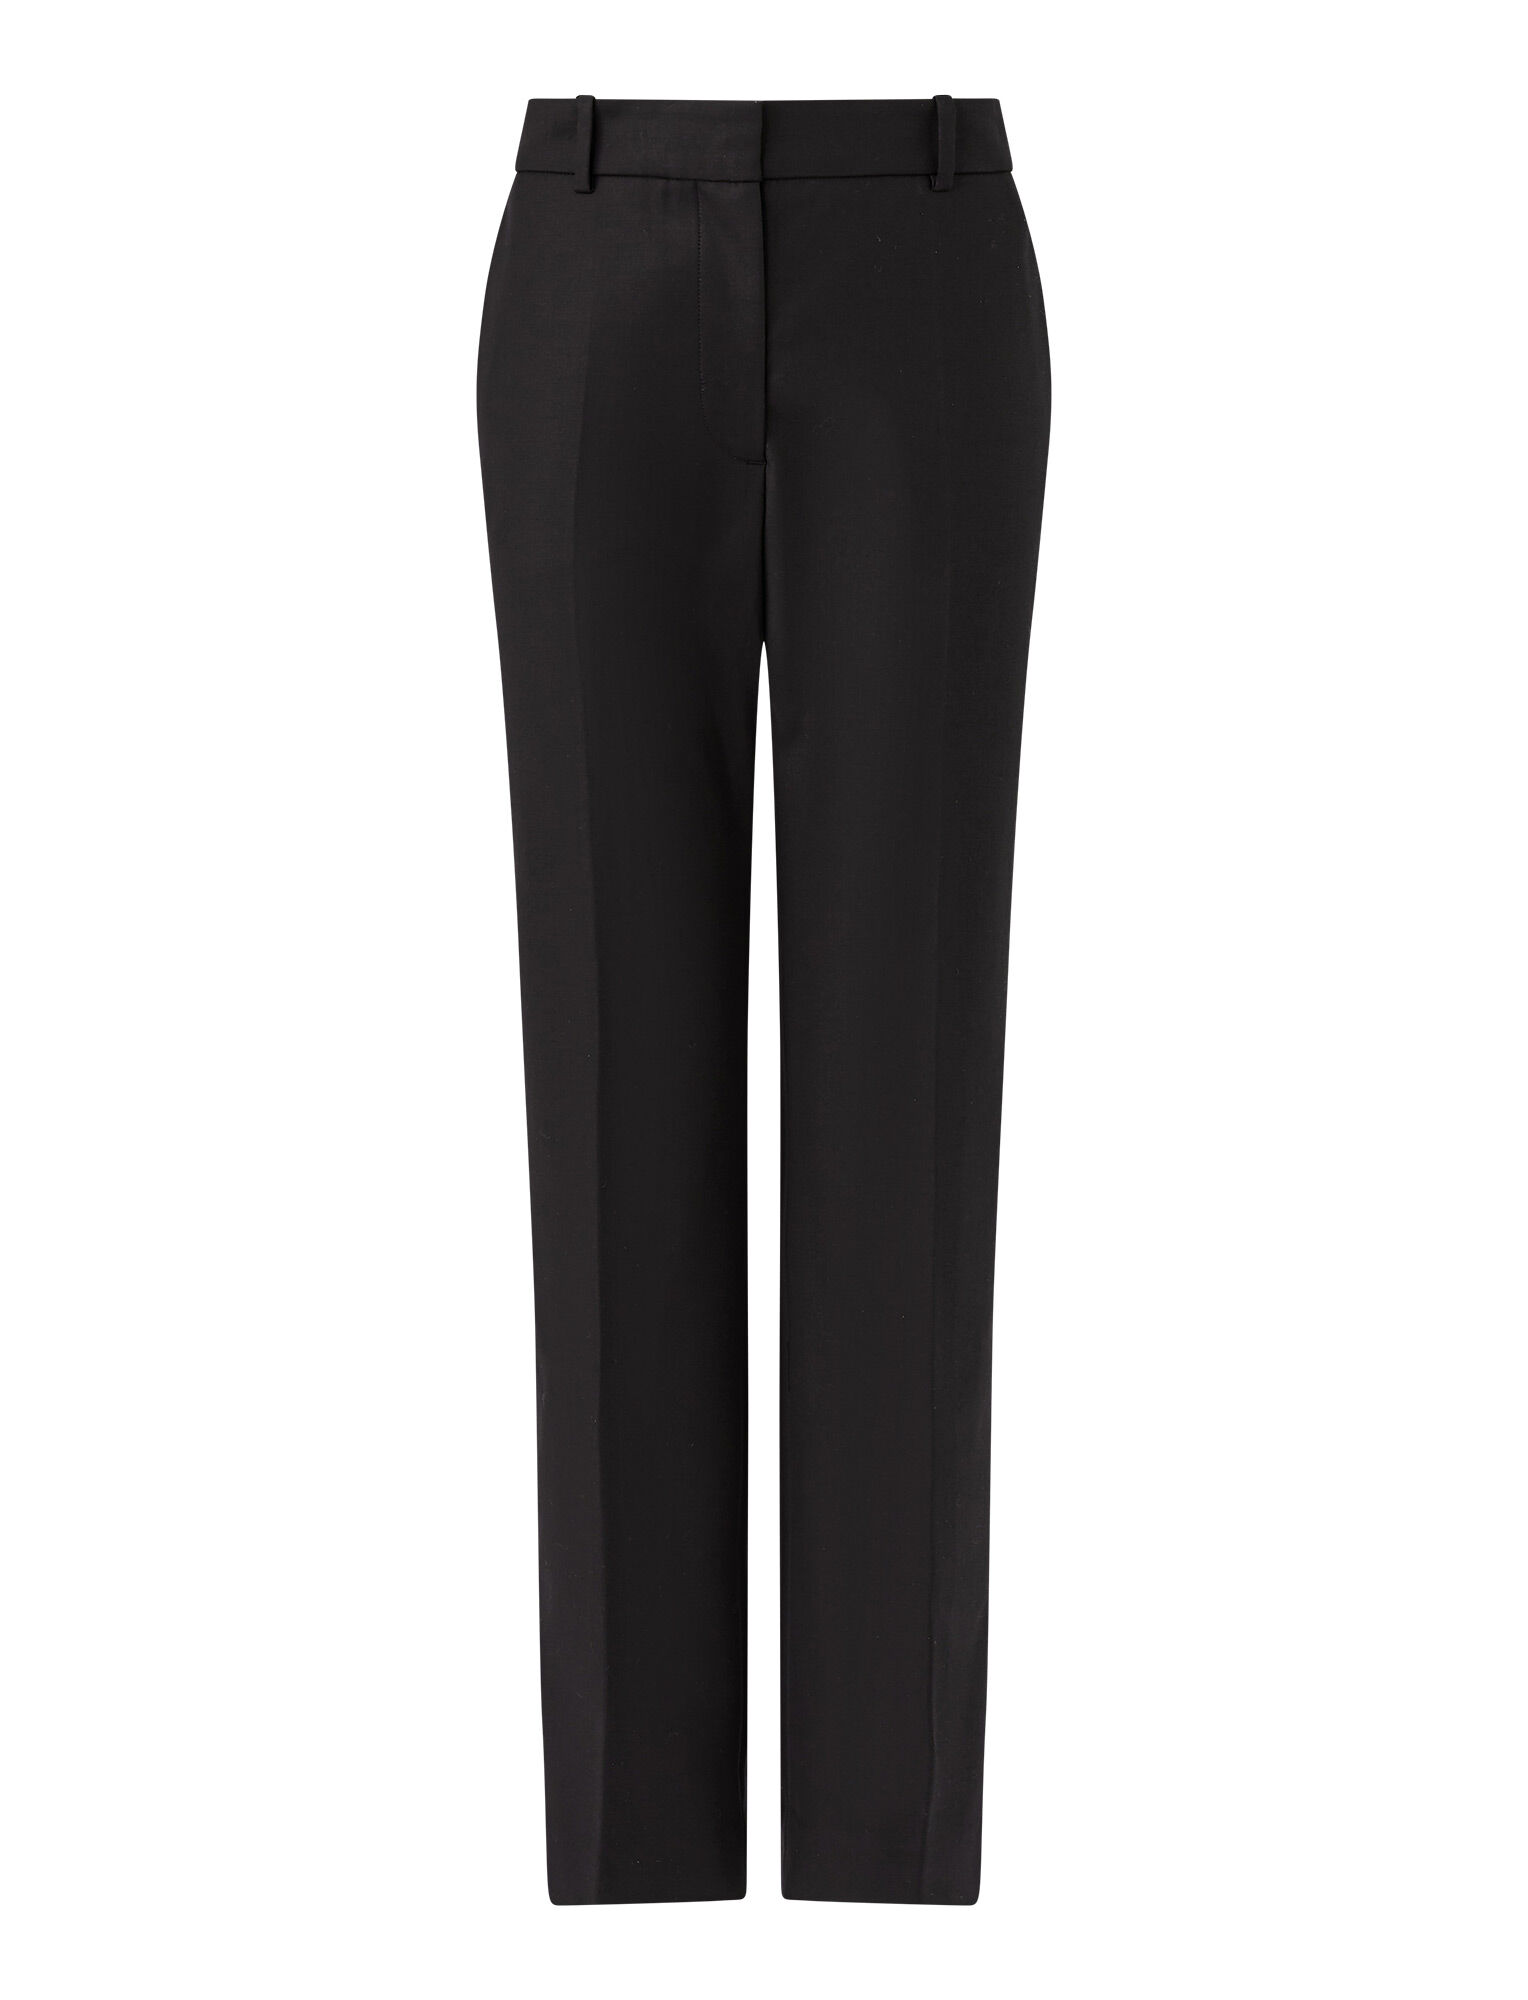 Joseph, Coleman Double Cotton Stretch Trousers, in BLACK